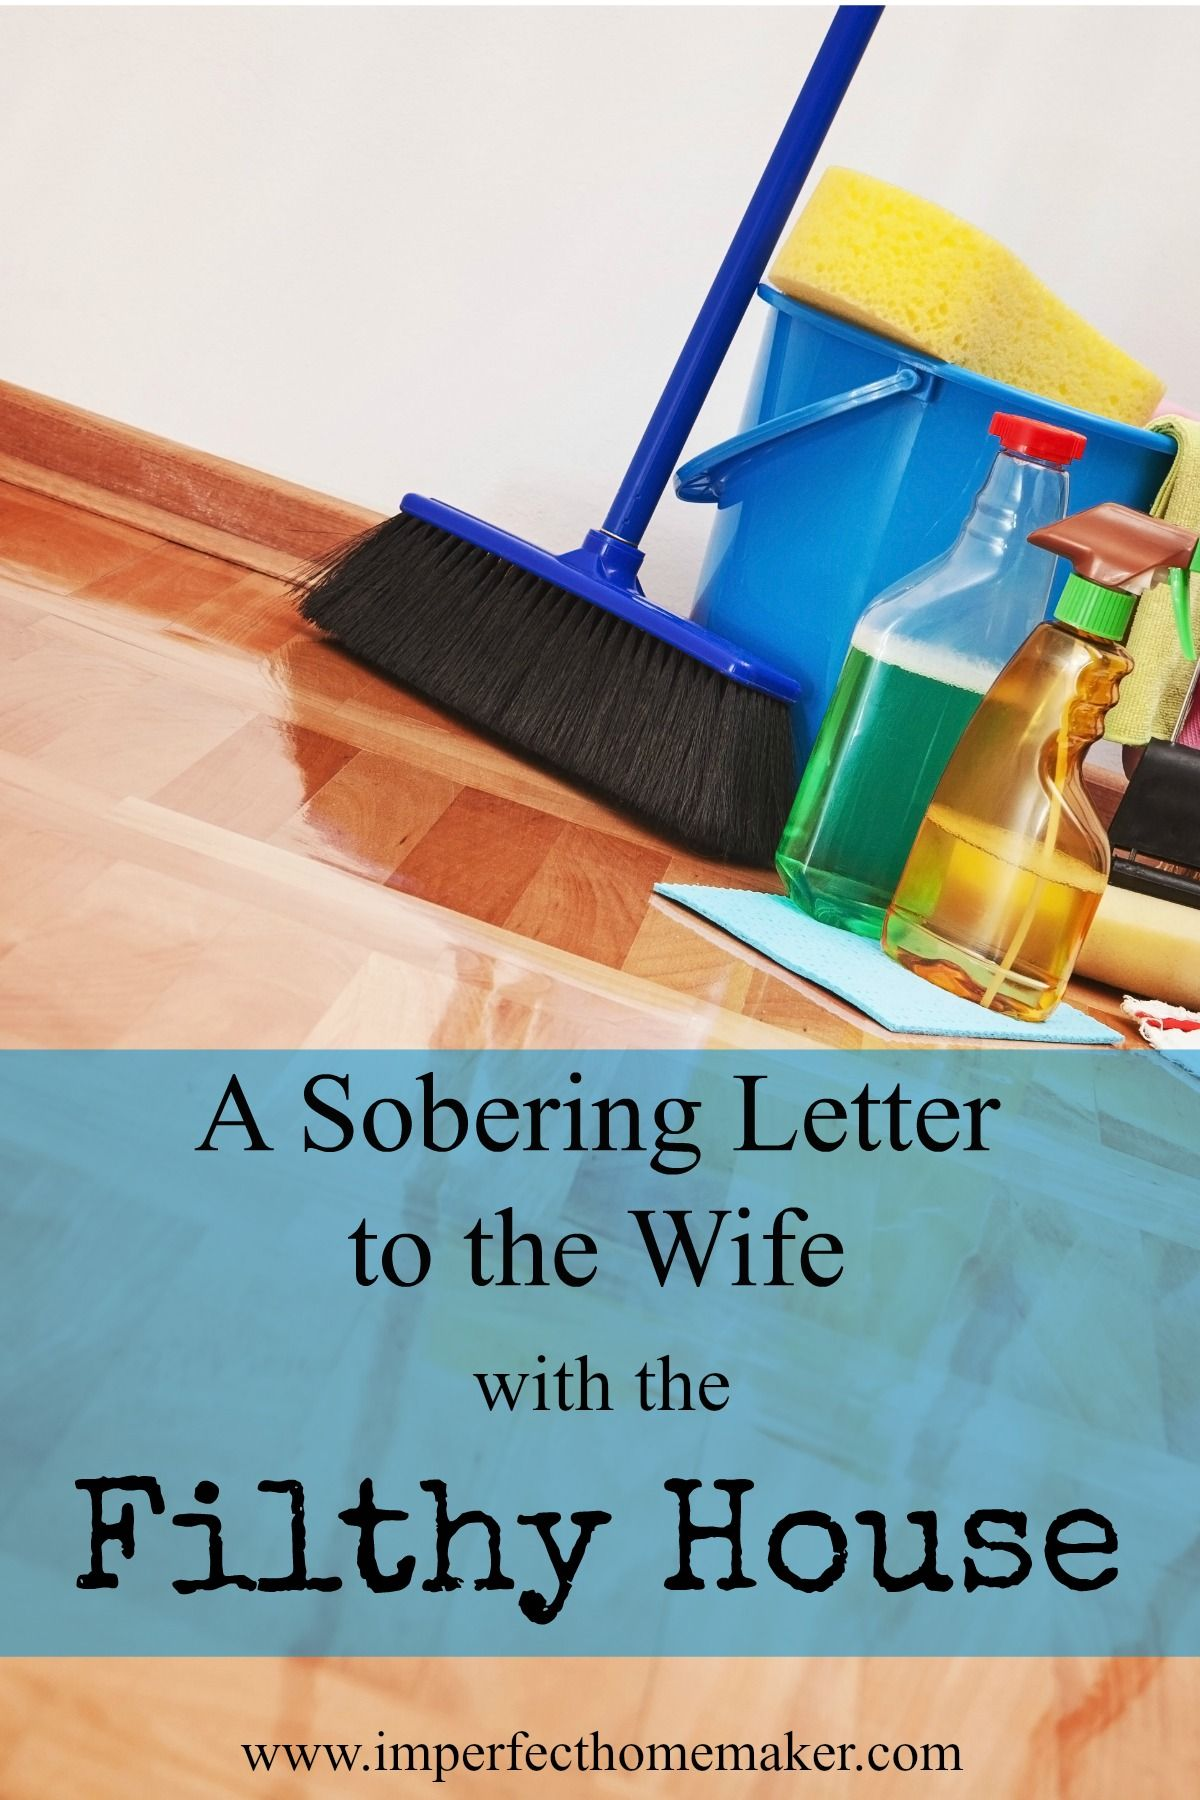 A Sobering Letter to the Wife With the Filthy House